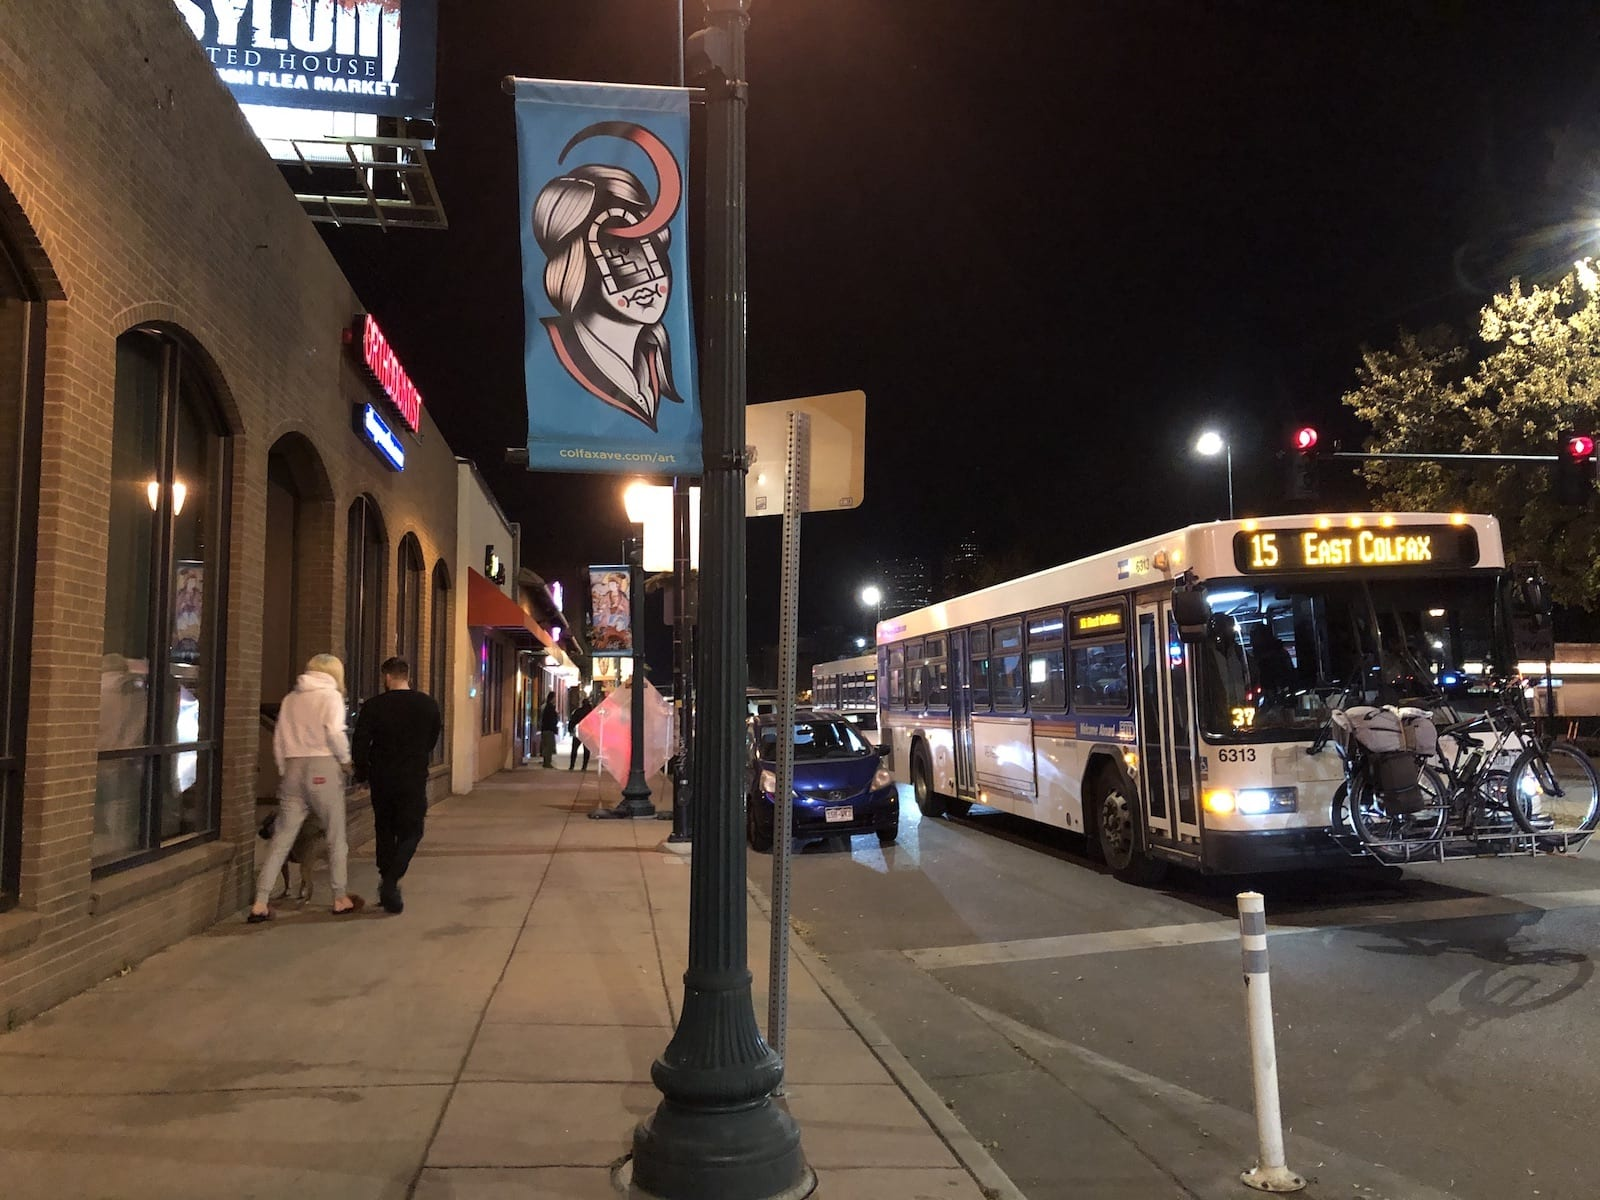 East Colfax Avenue 15 Bus Route Denver